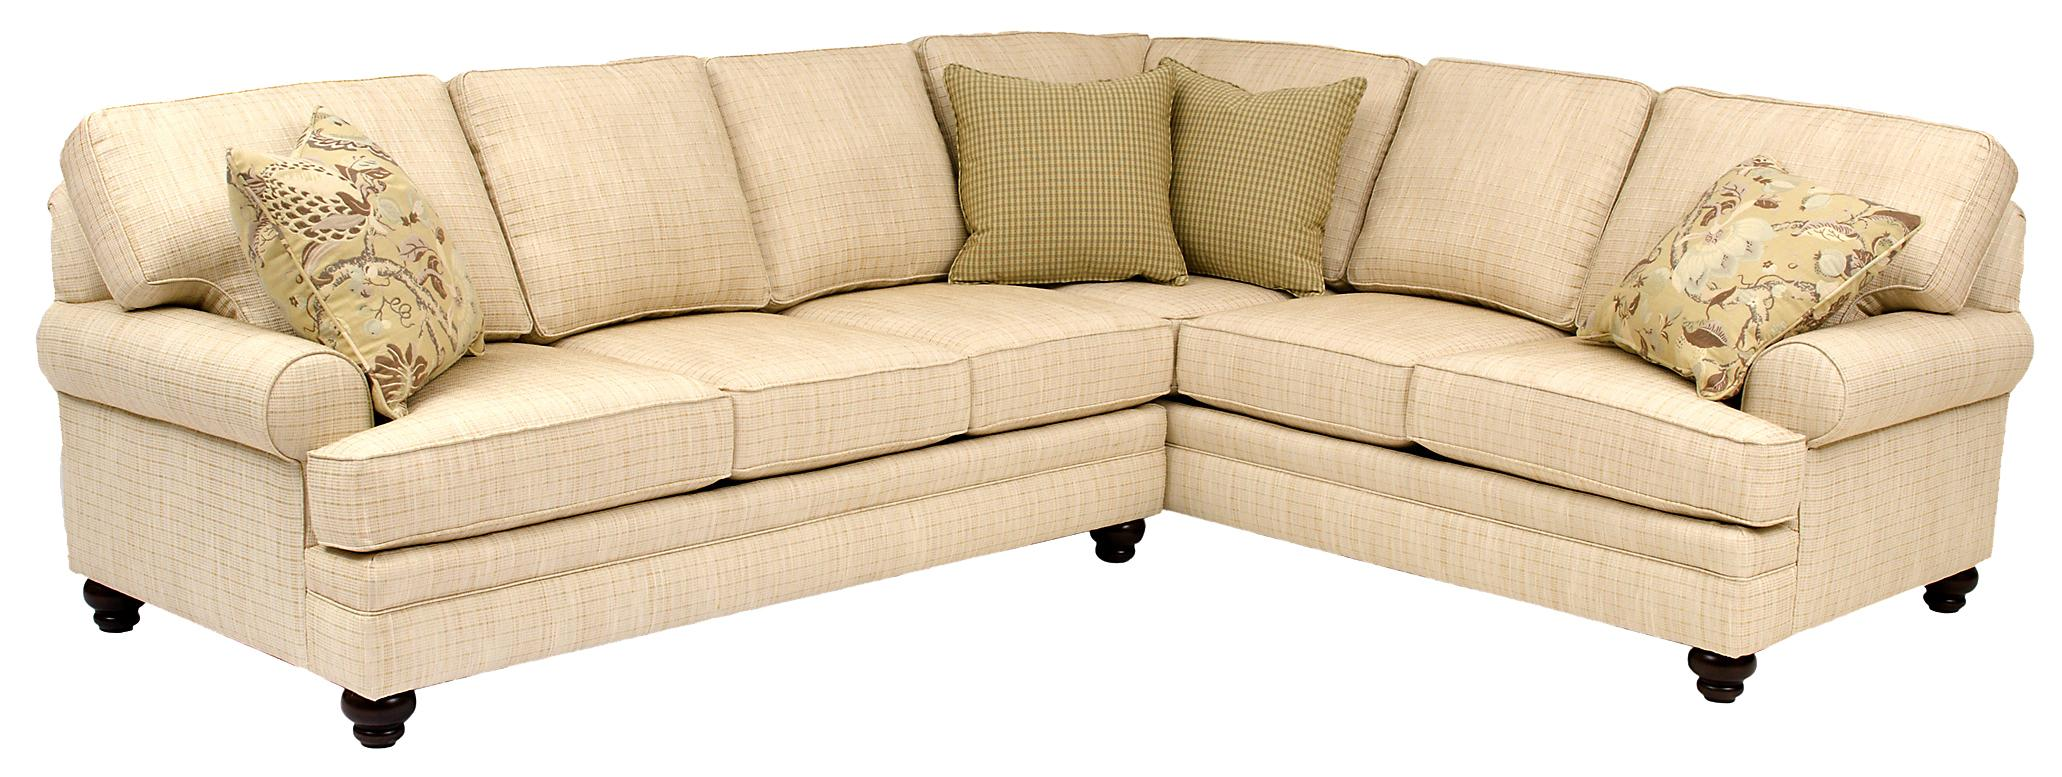 sofas for 5000 replacement feather sofa cushions uk smith brothers build your own series 5212 sect